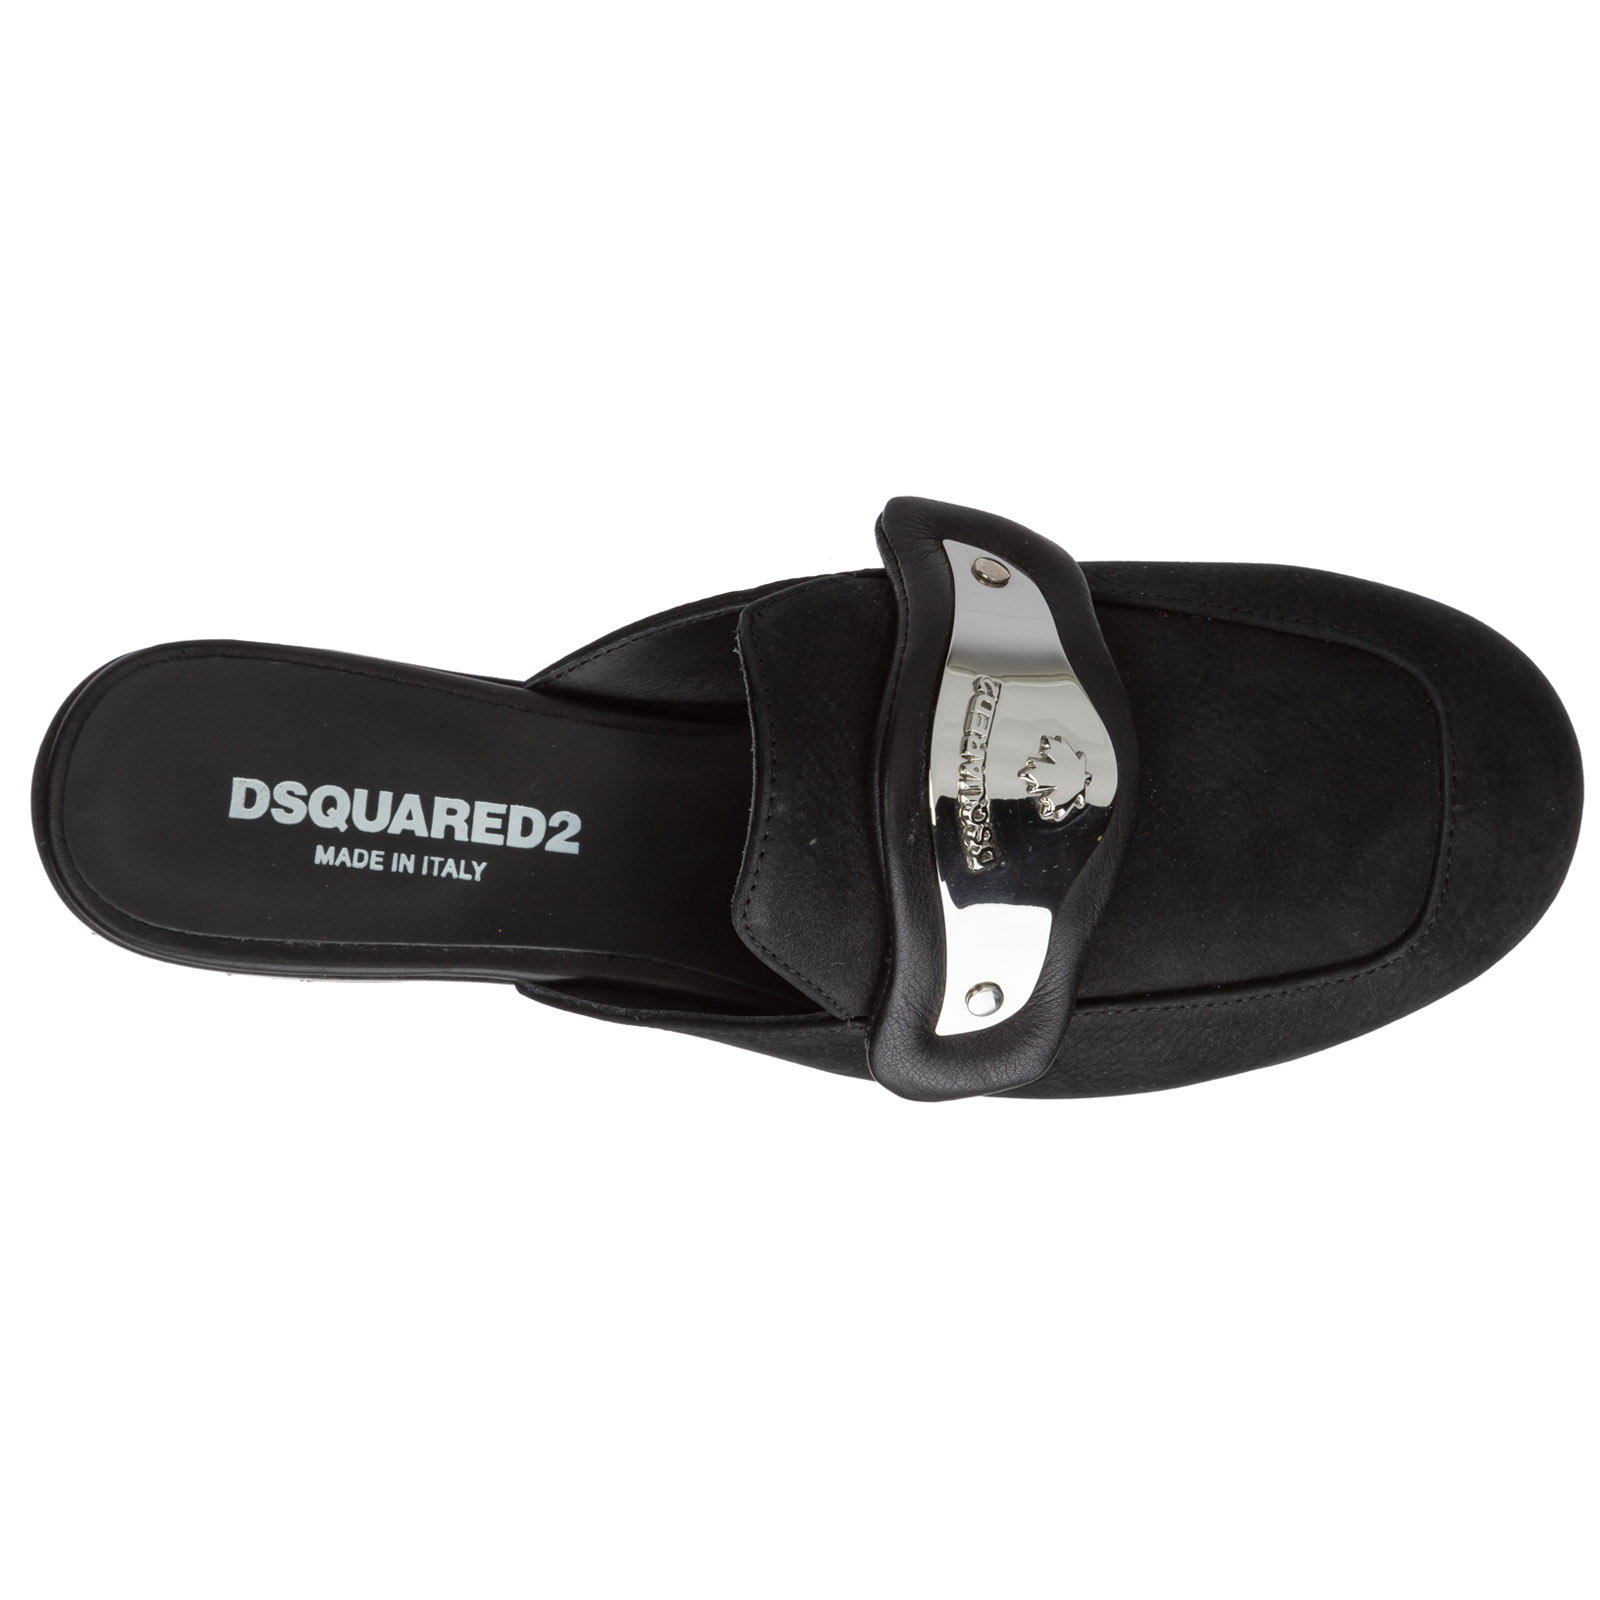 Mules shoes Dsquared2 59768 nero